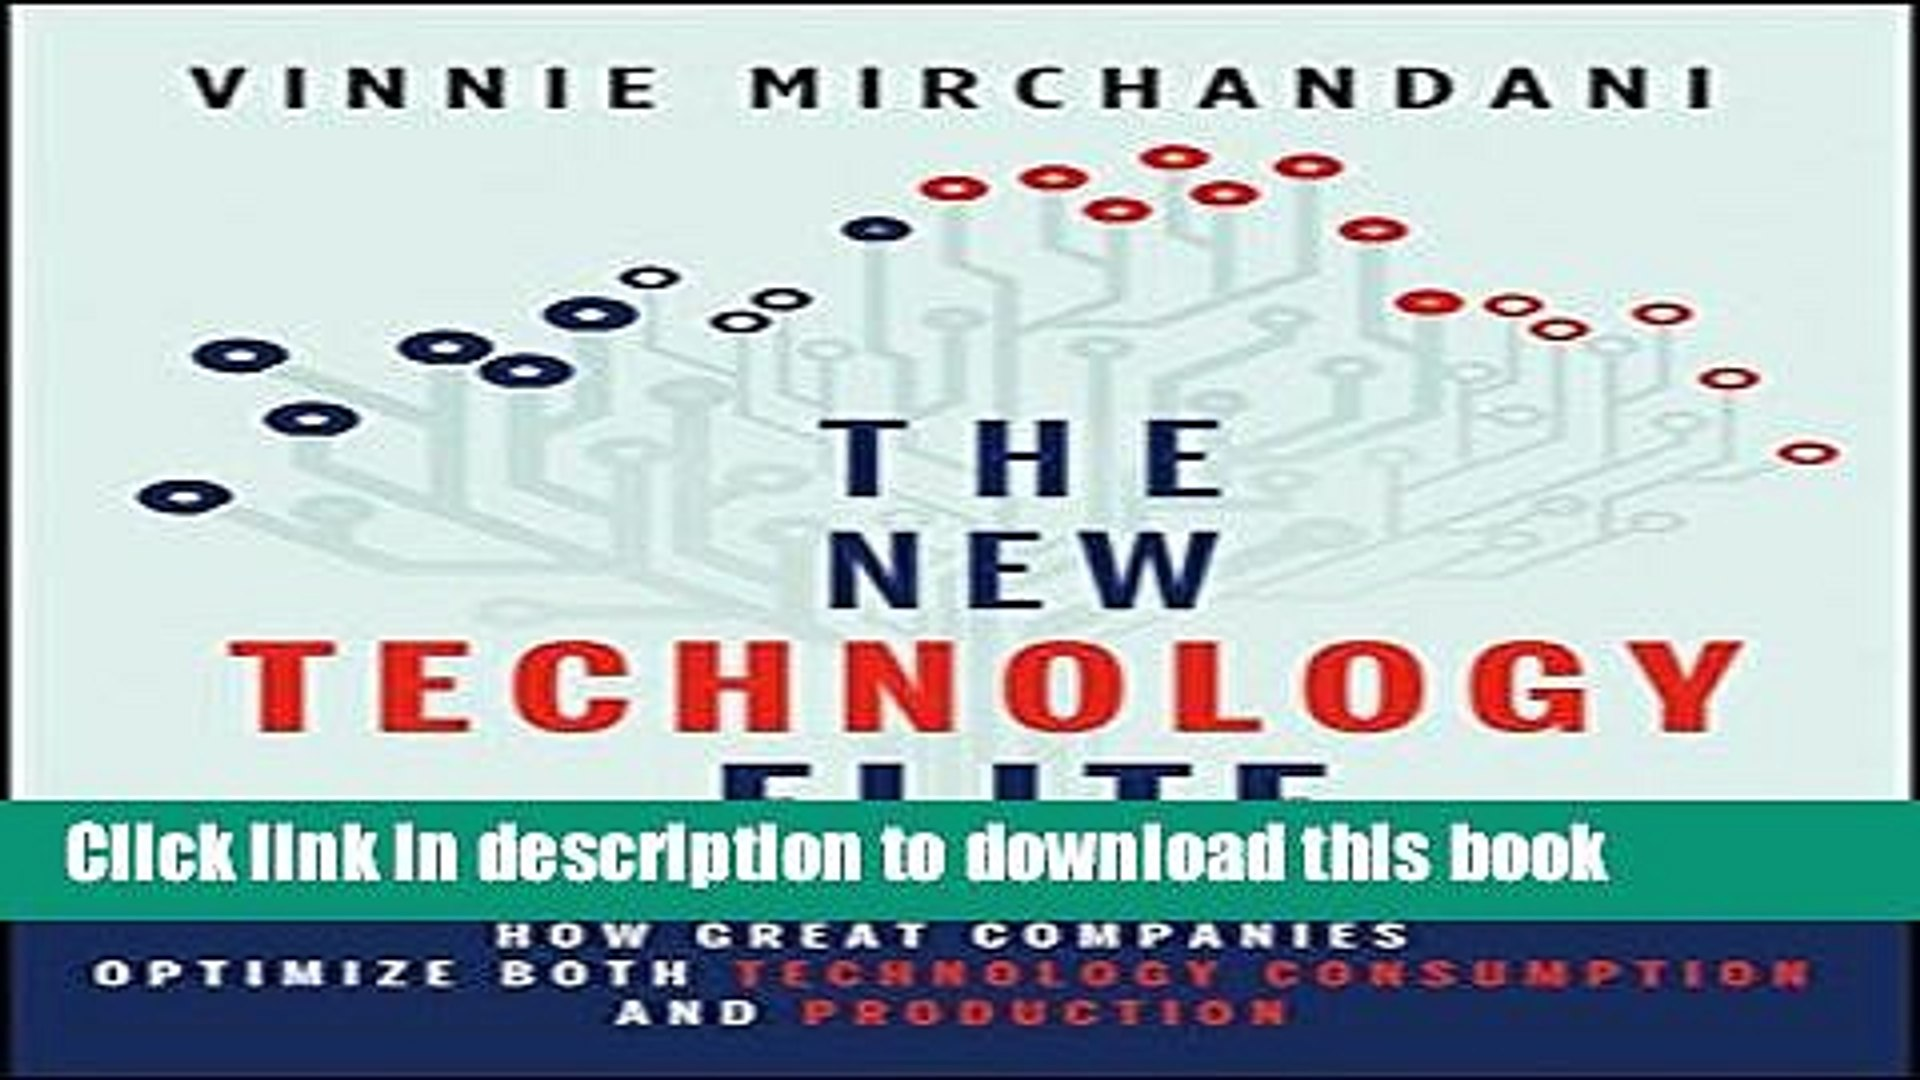 Read The New Technology Elite: How Great Companies Optimize Both Technology Consumption and